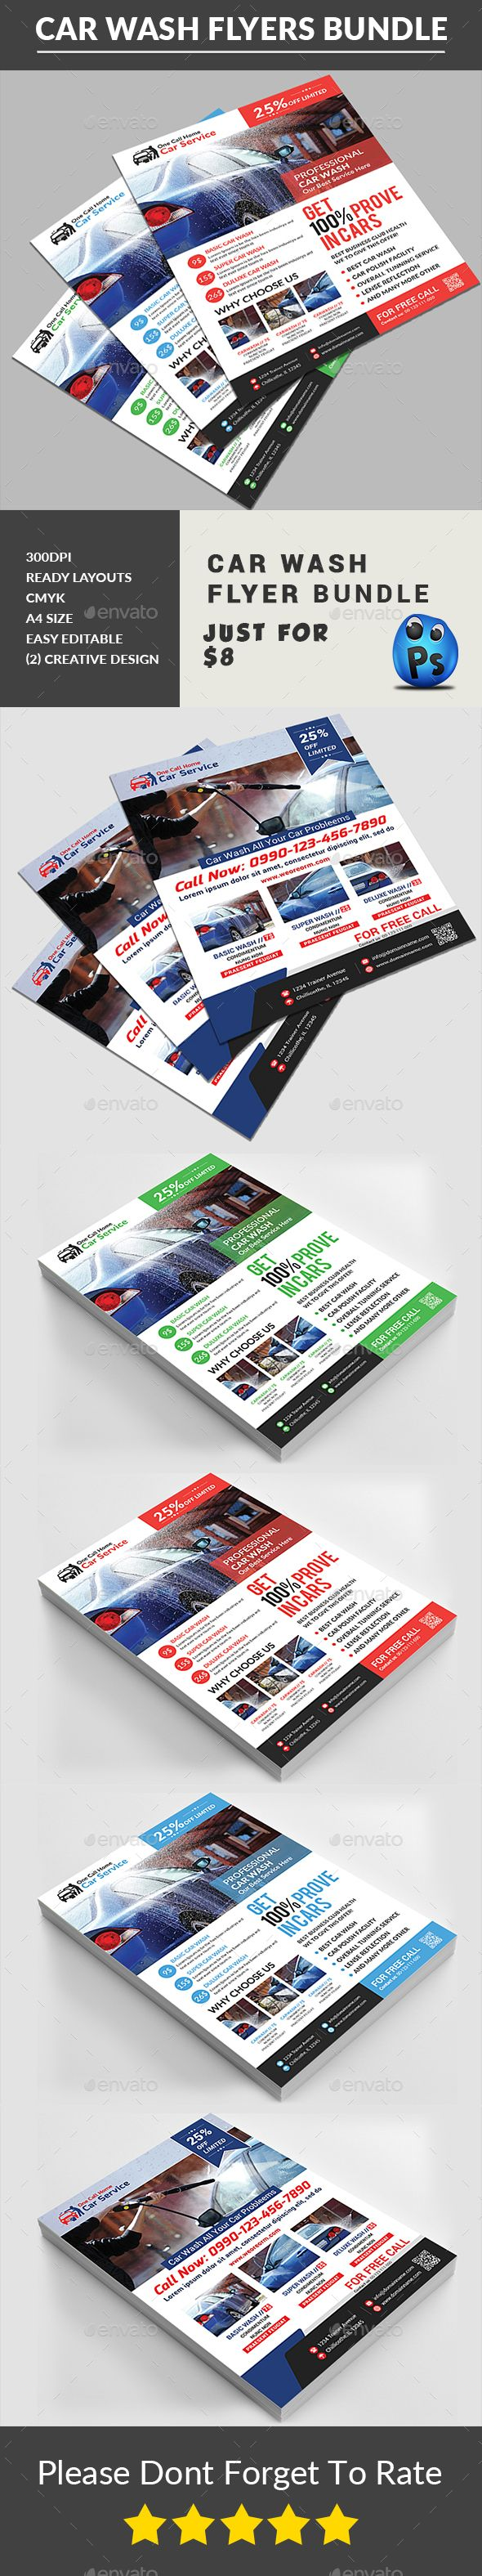 car wash flyers bundle flyer design templates cars and flyers car wash flyers design template bundle corporate flyers design template psd here